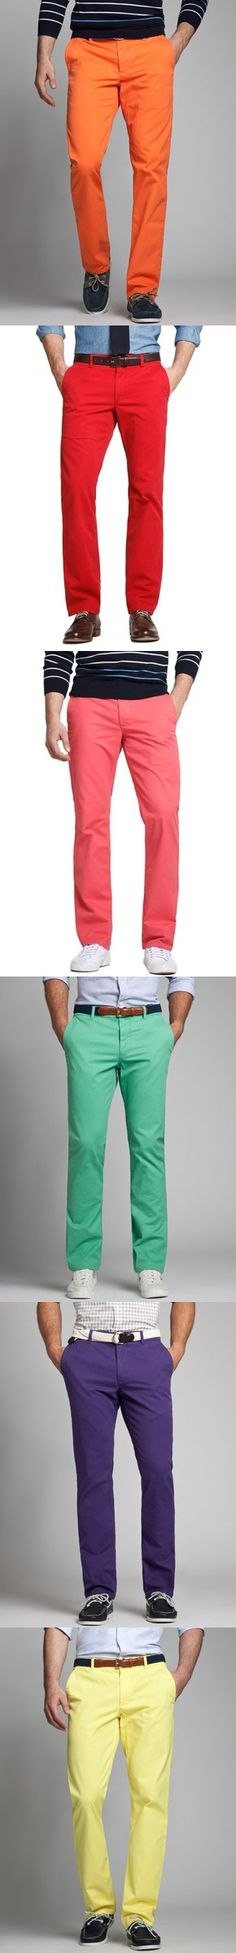 Colors! #mens #slacks #readytowear